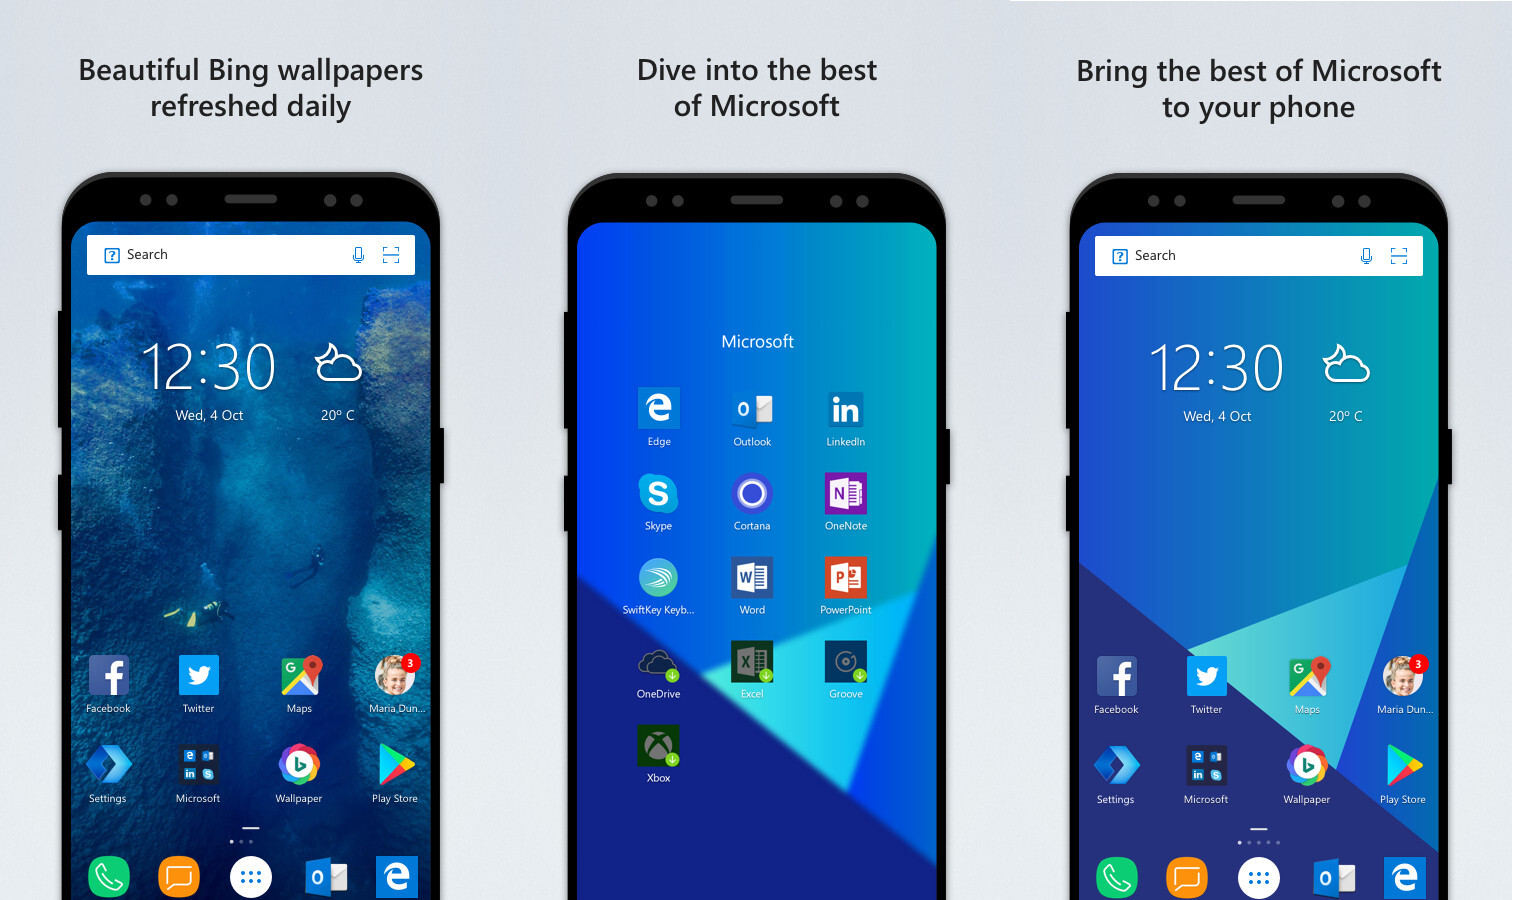 Microsoft Launcher receives major update, adds Home App Grid